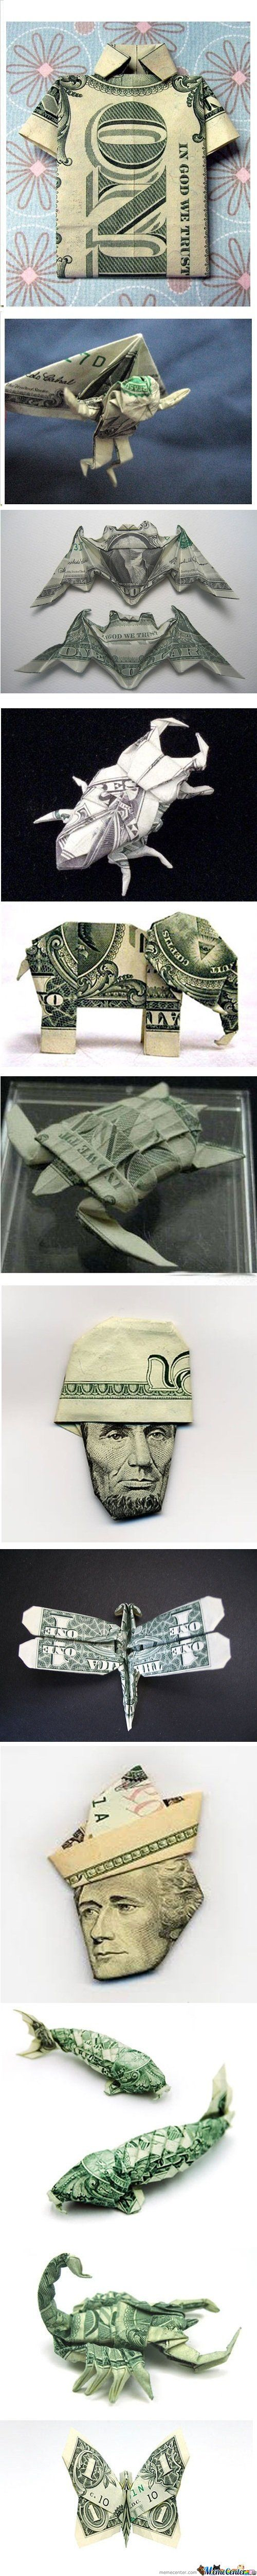 Creative ways to fold money when giving it as a gift.